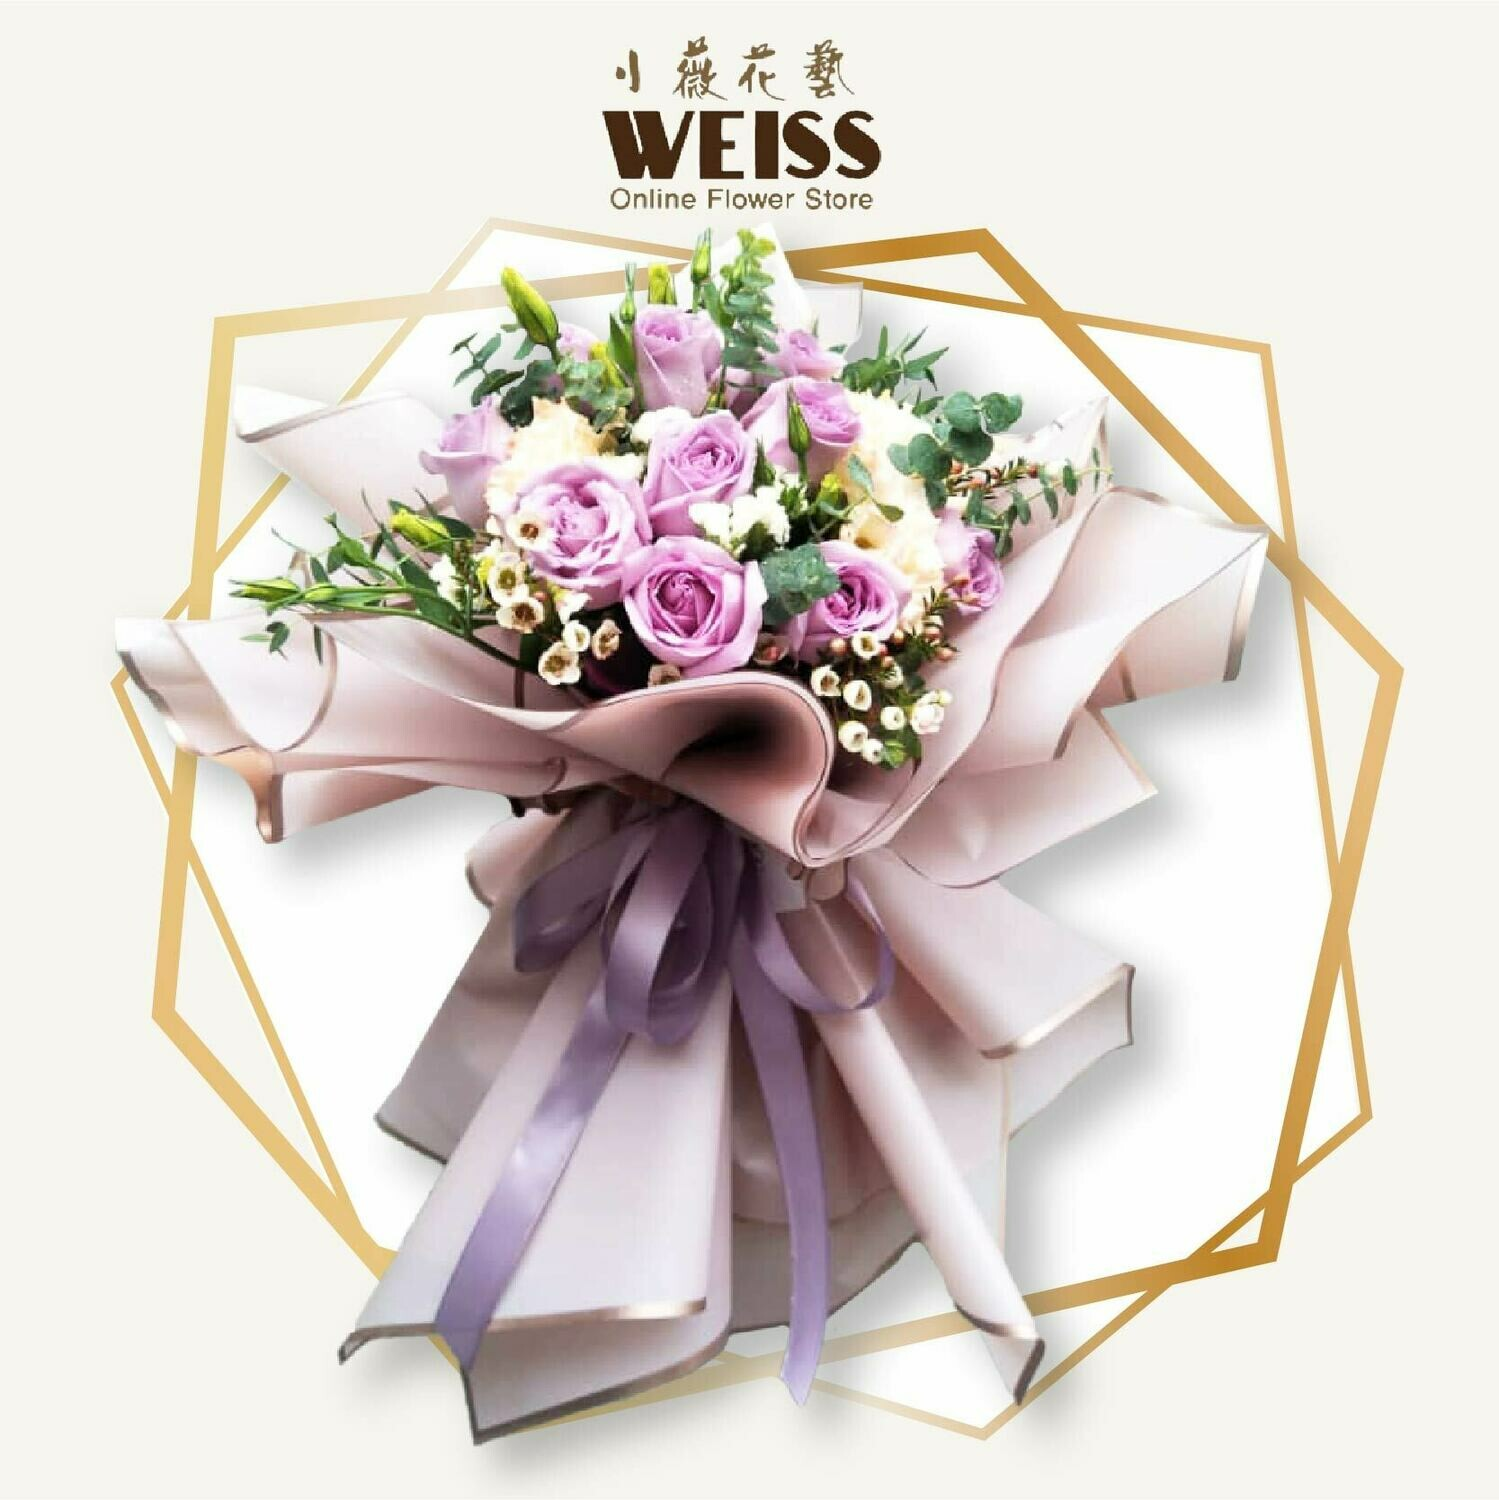 Weiss Florist 12stk purple roses (Free Shipping! Only deliver in JB)